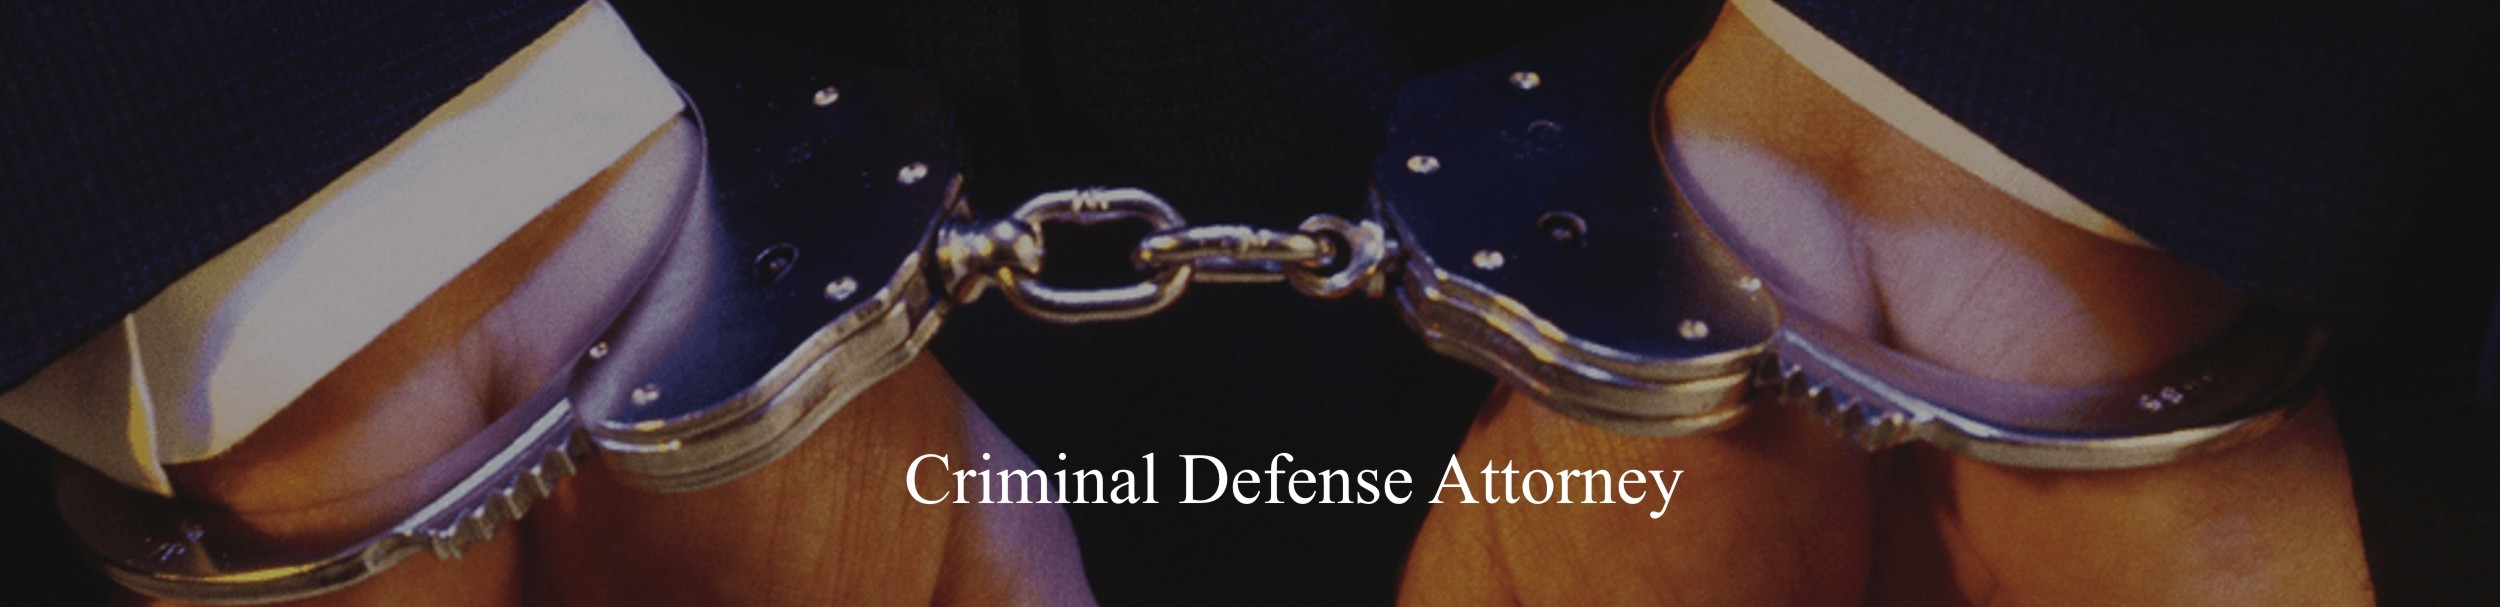 images/slide/crimial-defense-attorney-medford-oregon.jpg